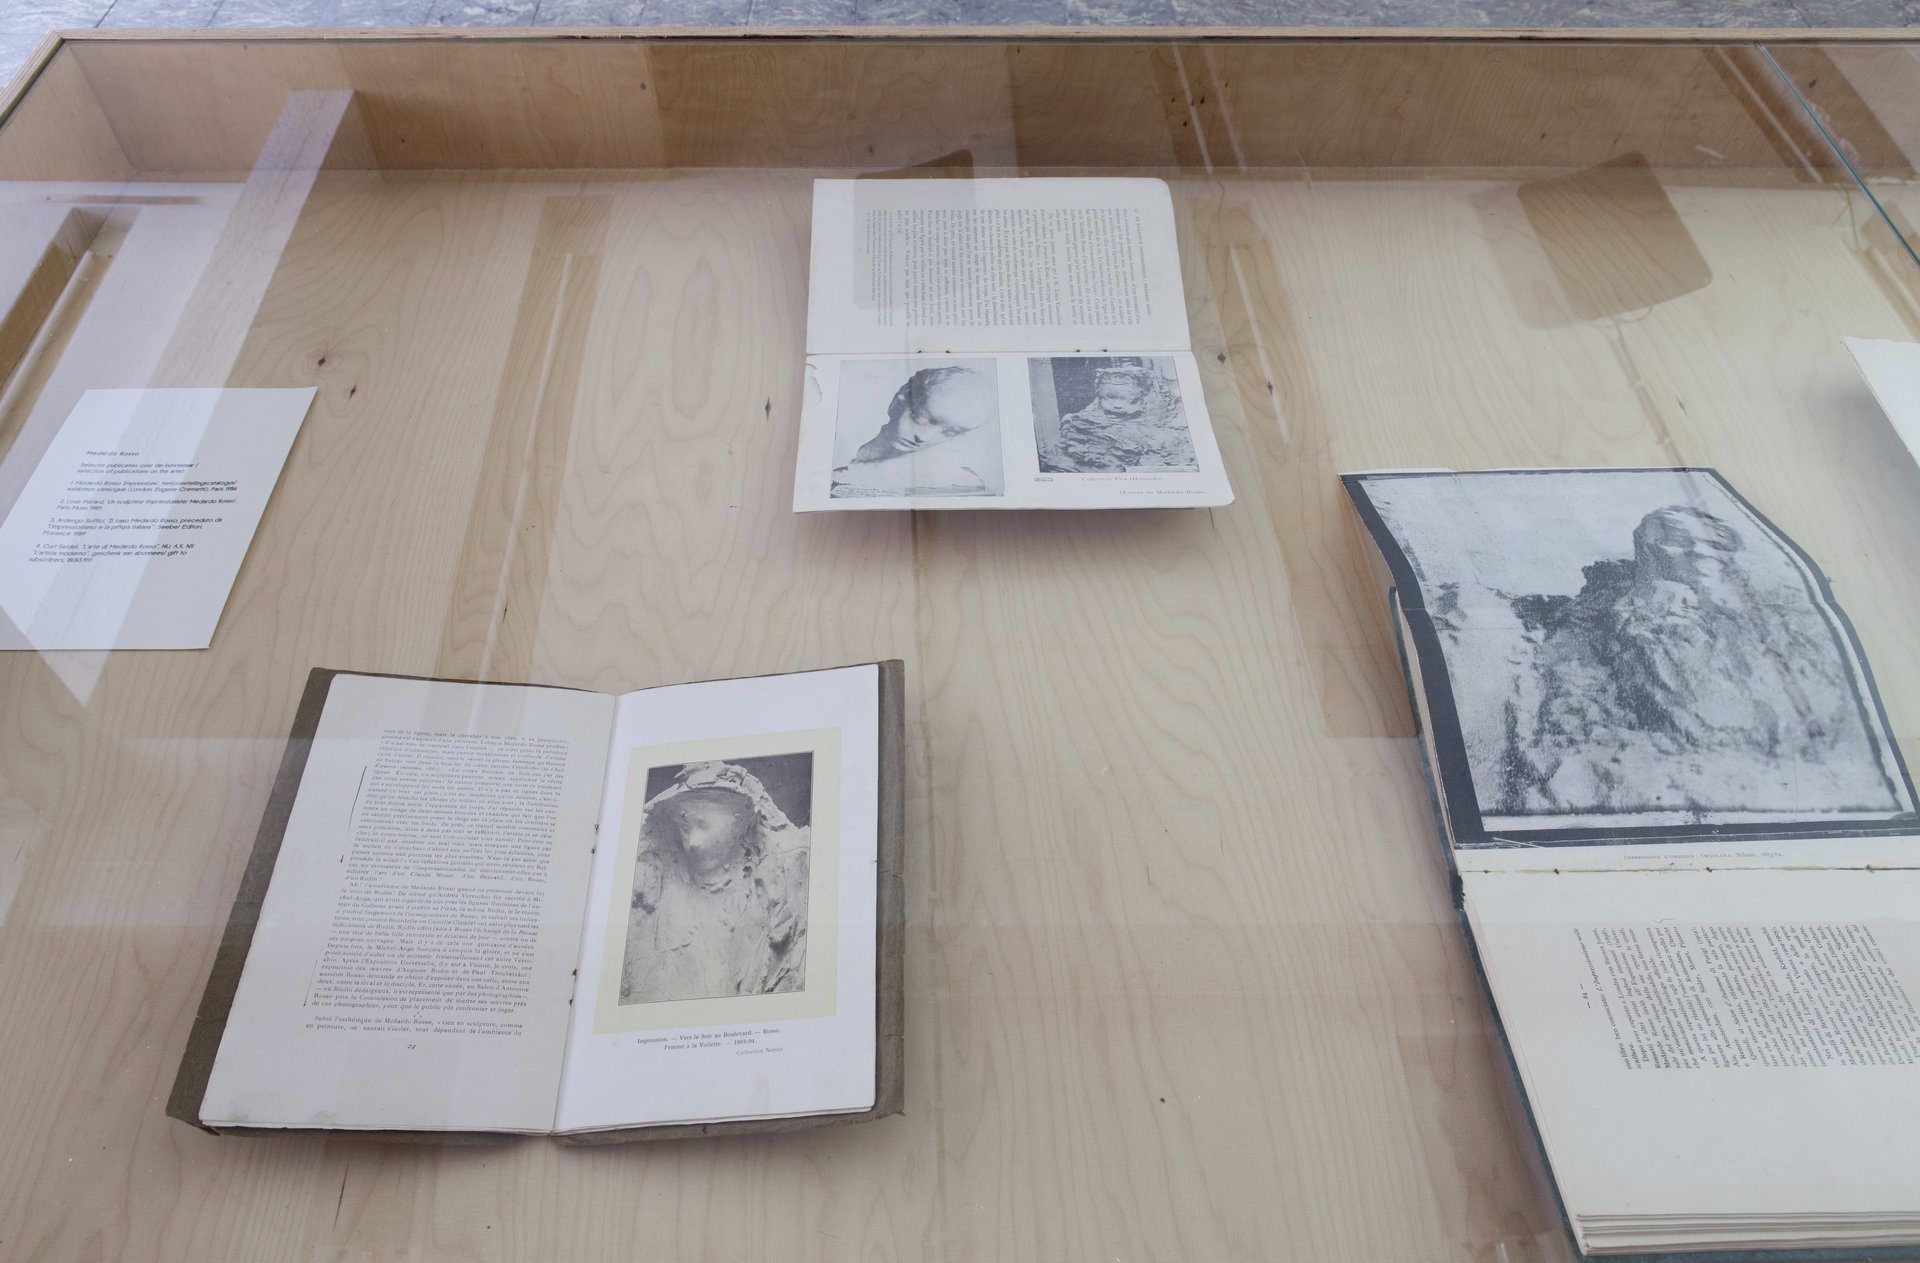 Medardo Rosso, selection of publications on the artist, in 'The Camera's Blind Spot II', installation view, Extra City Kunsthal, 2015 © We Document Art